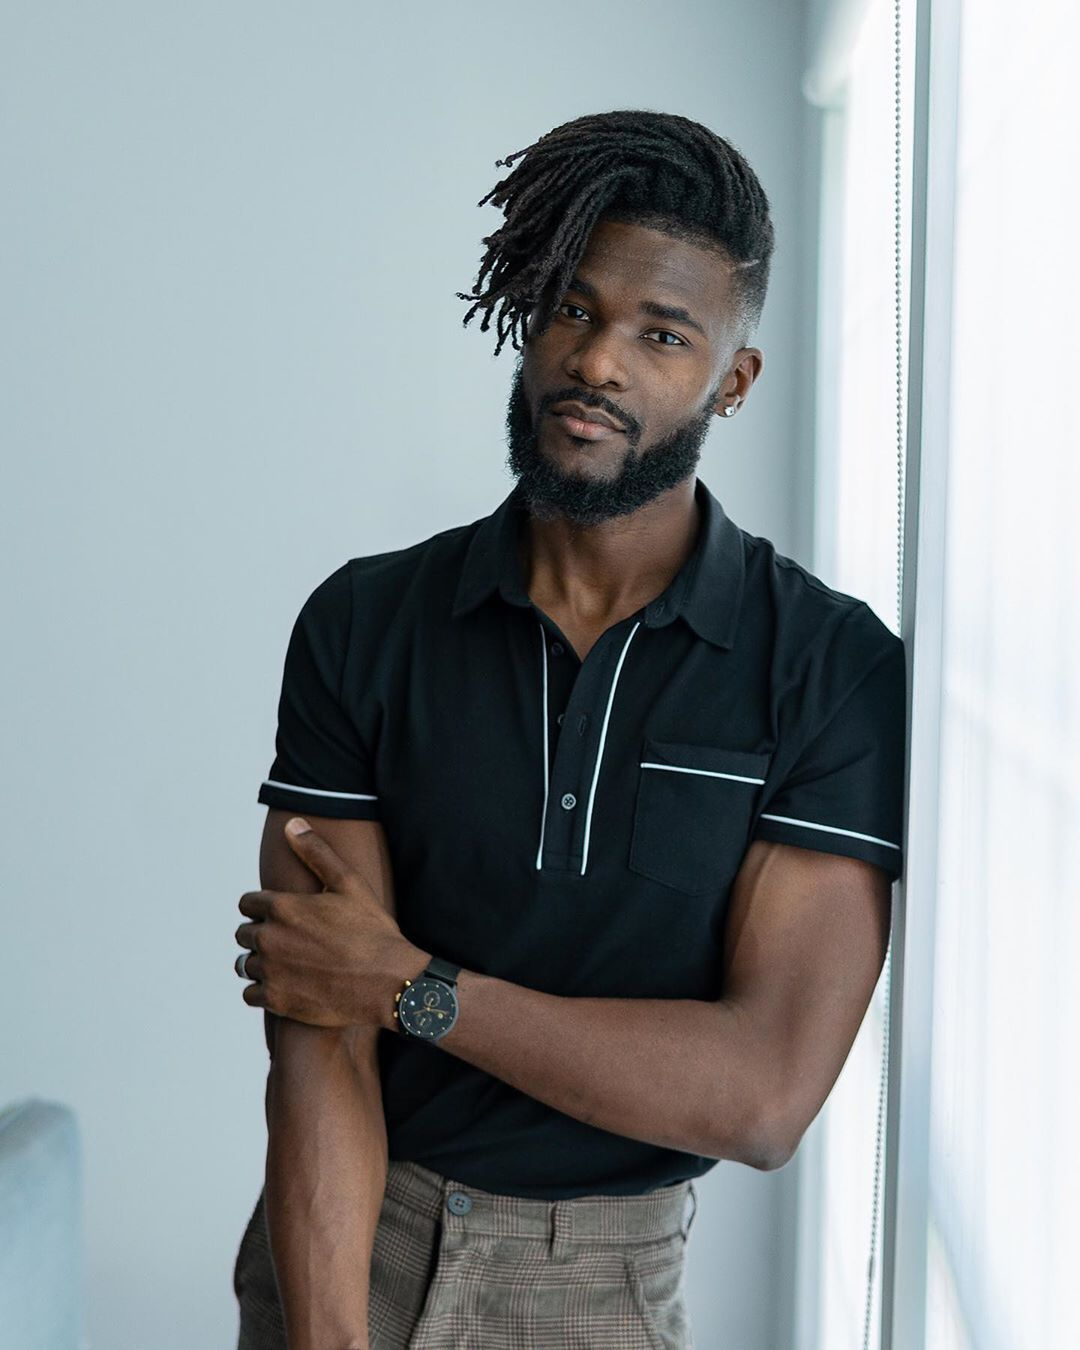 21 Best Hairstyles and Haircuts for Black Men in 2020 ...